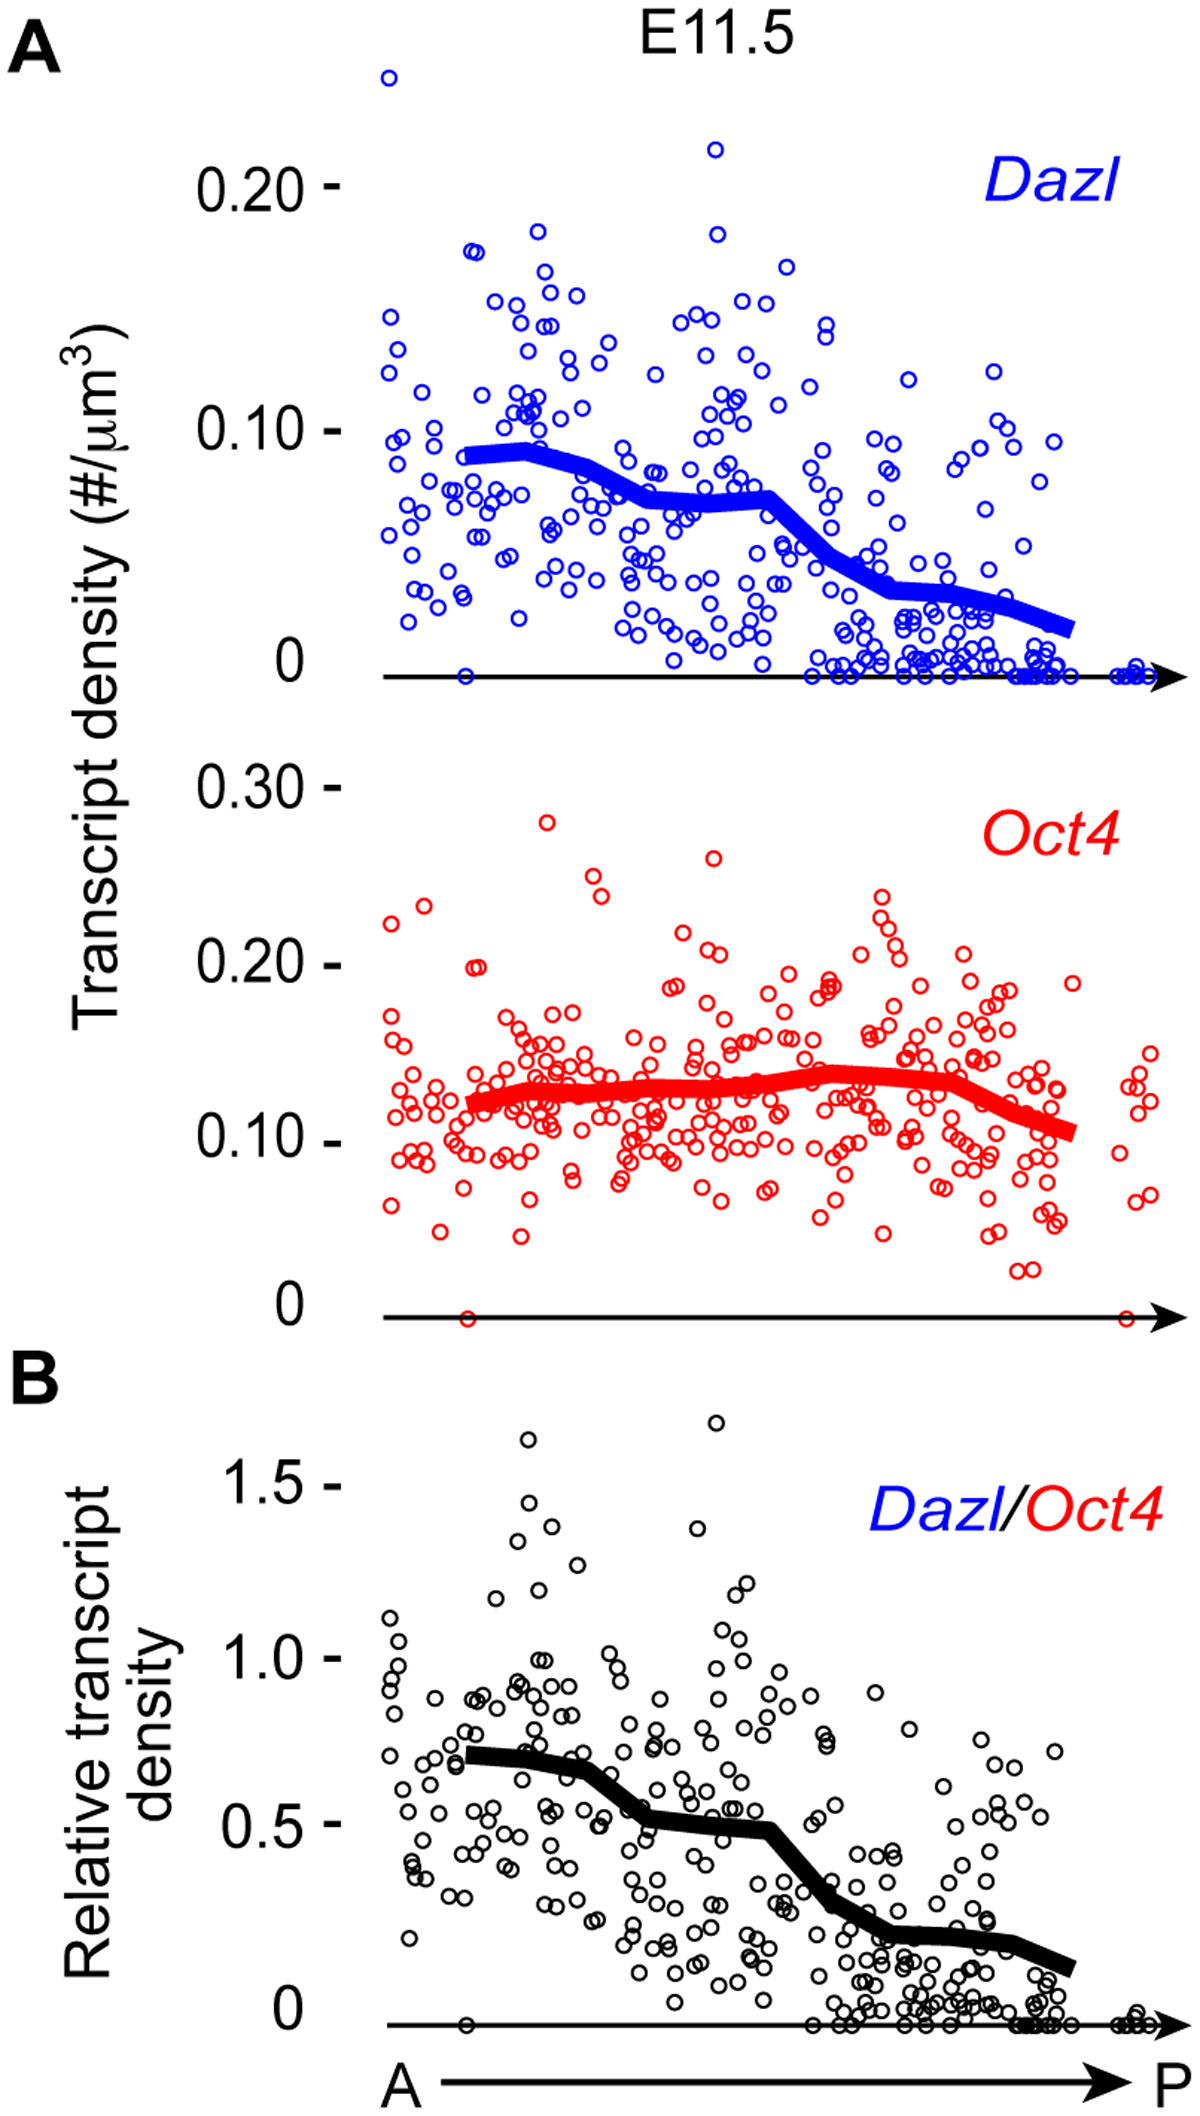 <i>Dazl</i> expression in germ cells displays an A-P gradient along the genital ridge.